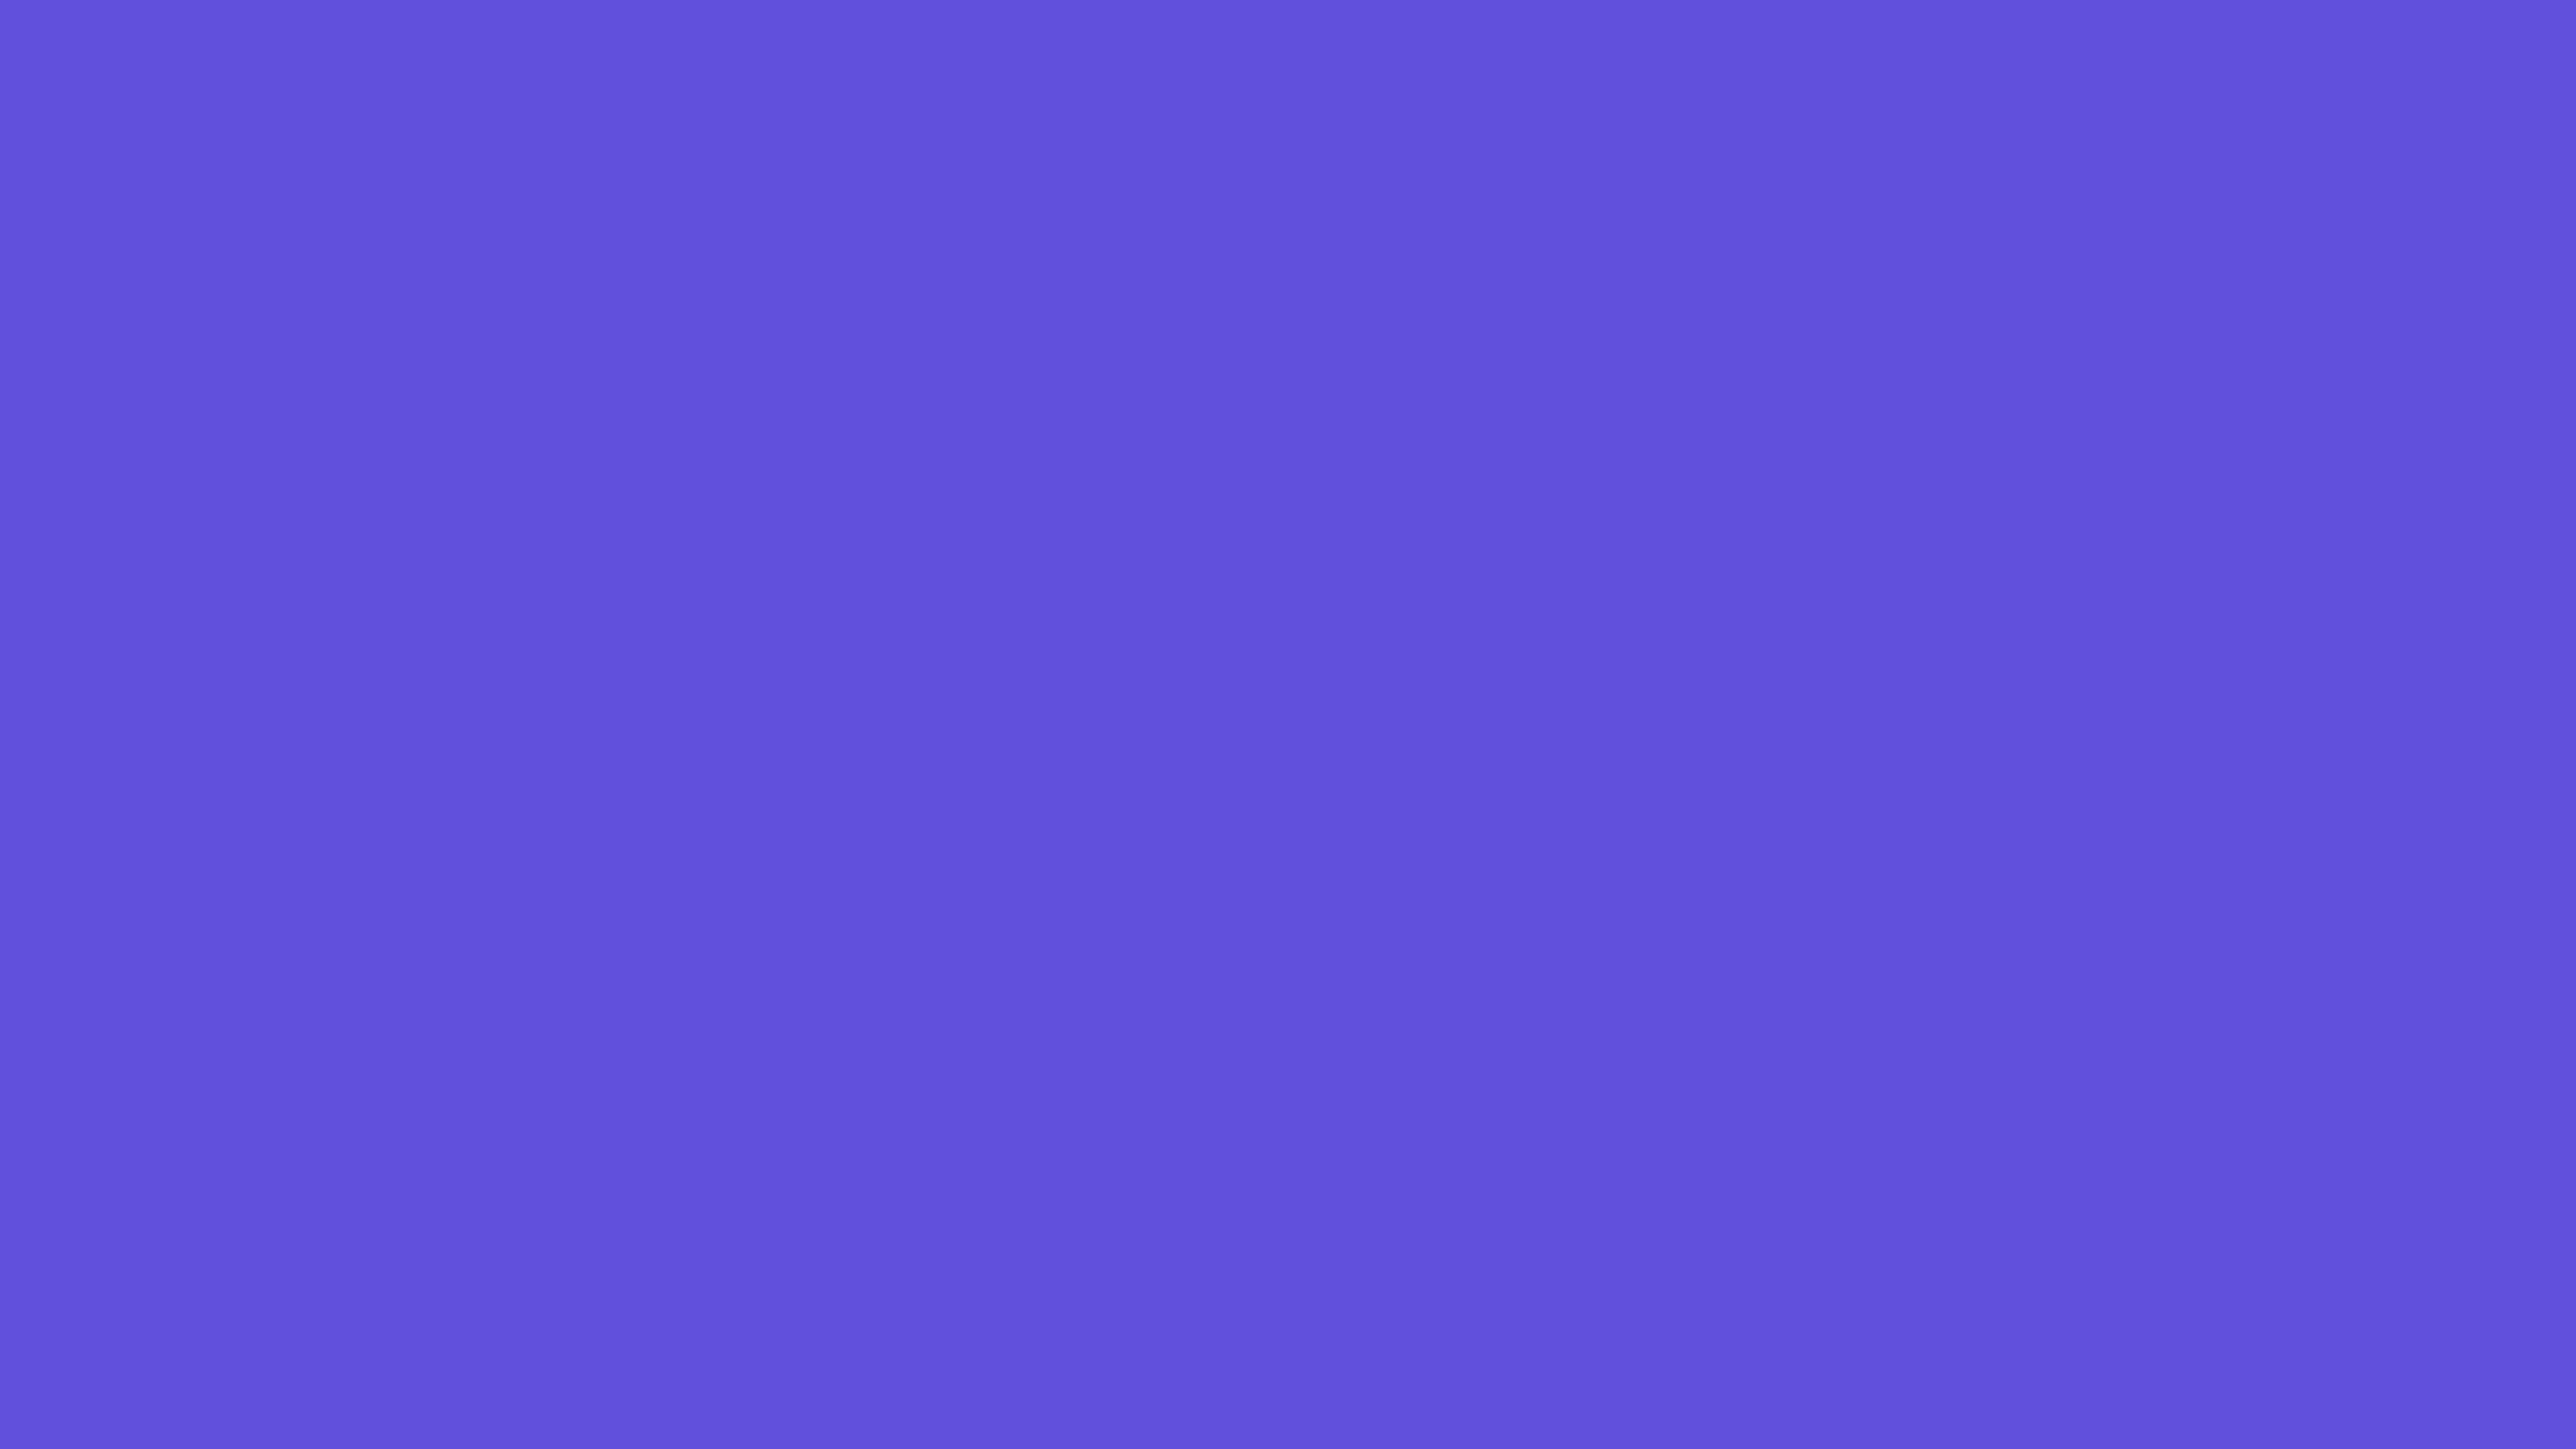 3840x2160 Majorelle Blue Solid Color Background